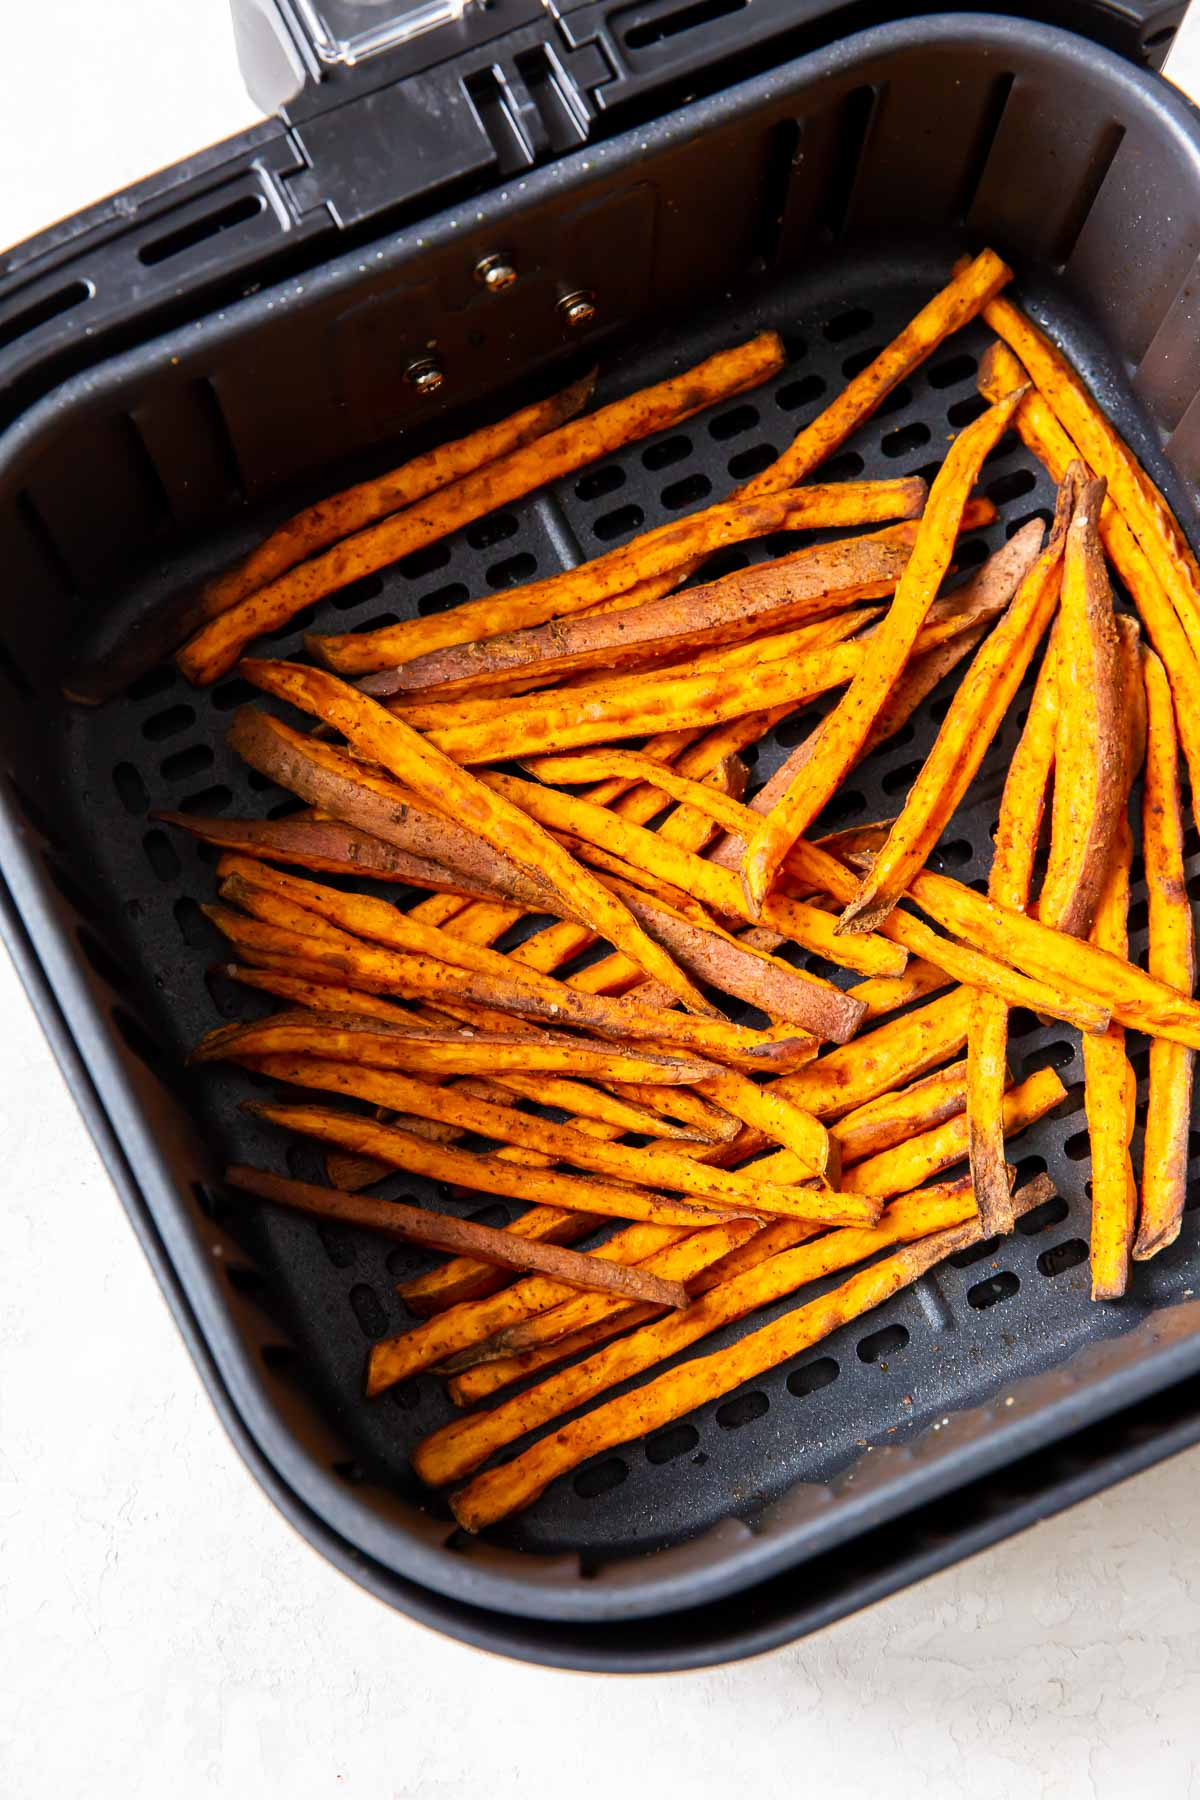 cooked sweet potato fries in air fryer basket